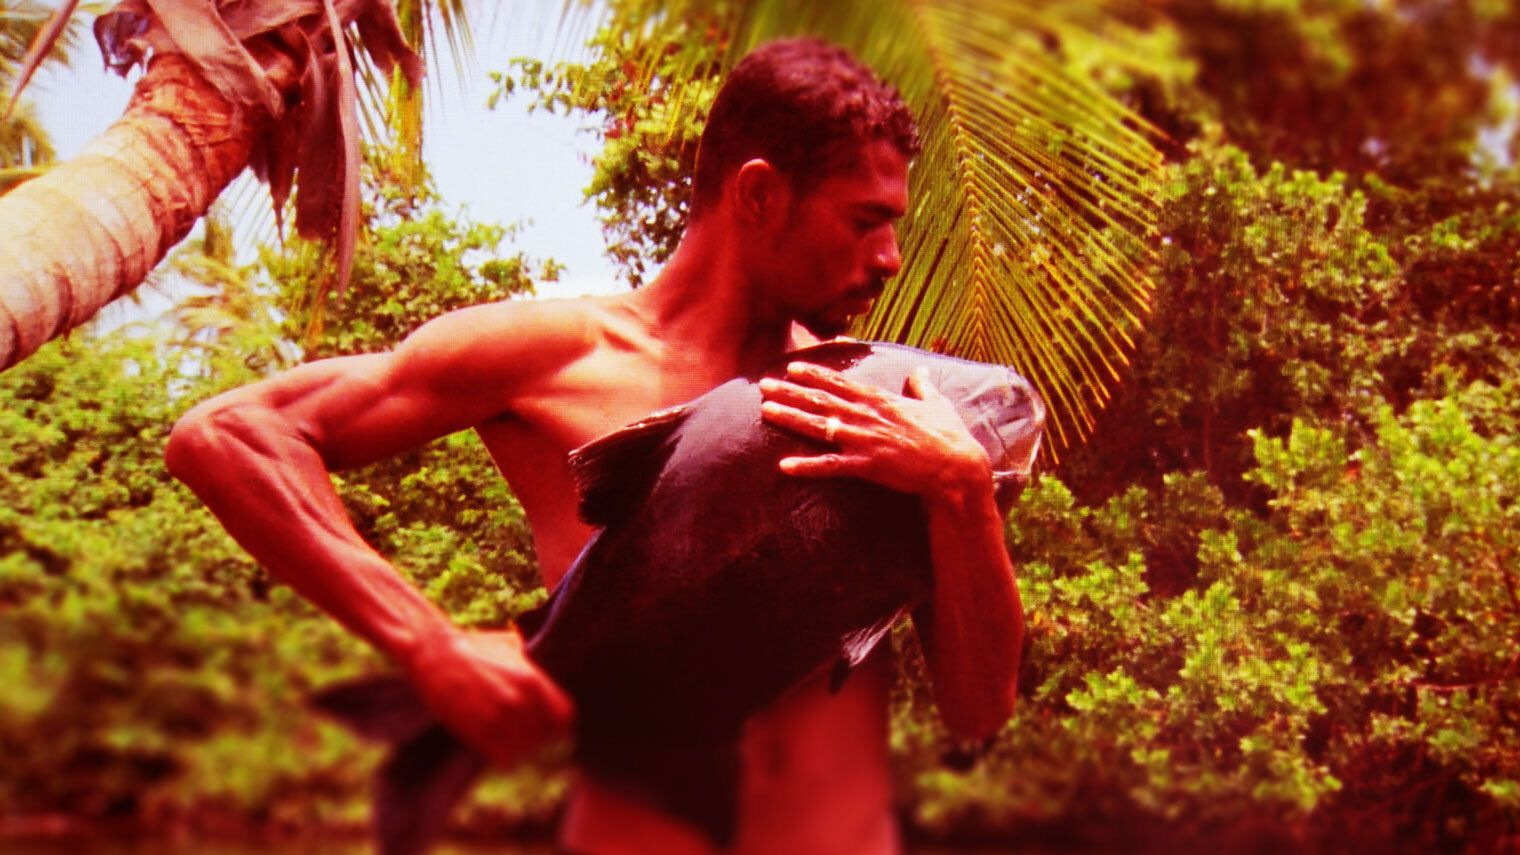 A river fisherman in remote Brazil cradles his dying catch in his arms.